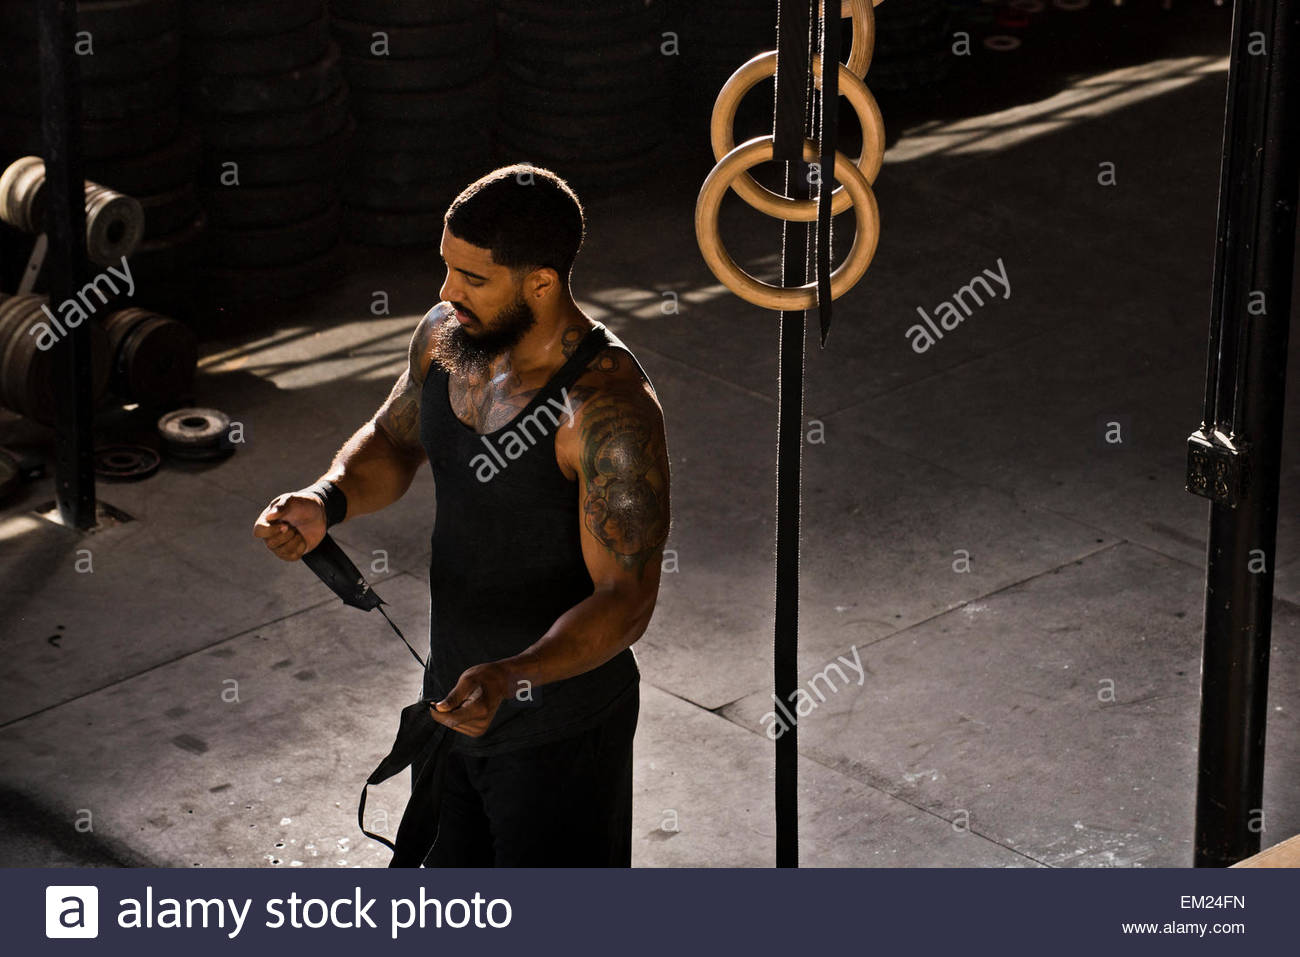 A crossfit athlete taking off his wrist wraps. - Stock Image